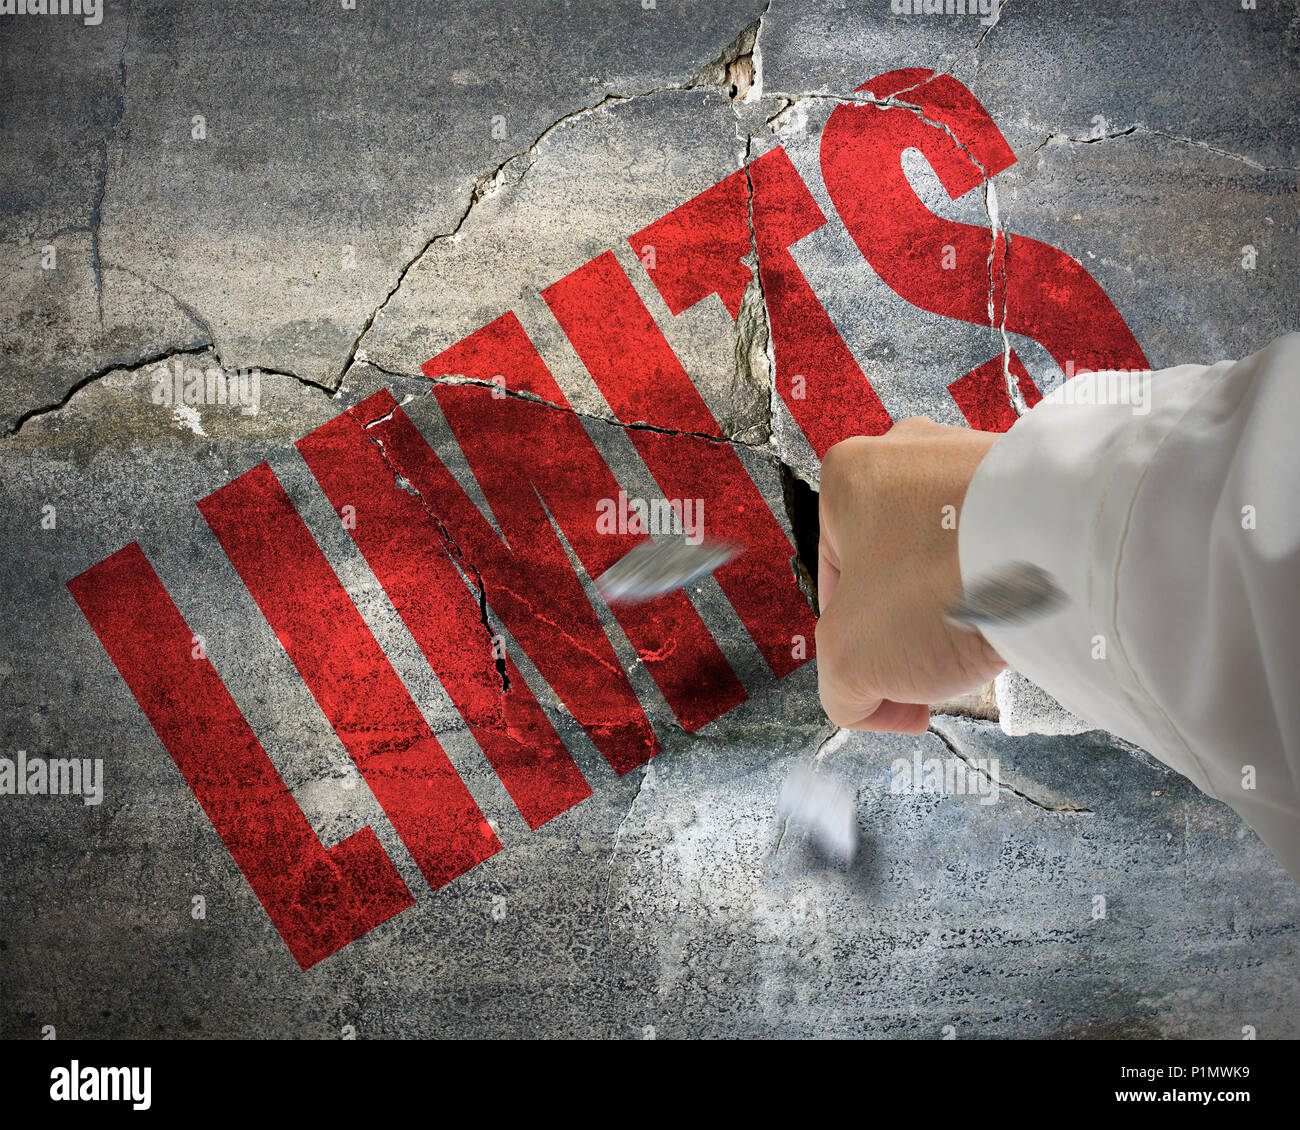 Punching, cracked concrete wall with word LIMITS on it and small pieces rock flying out - Stock Image